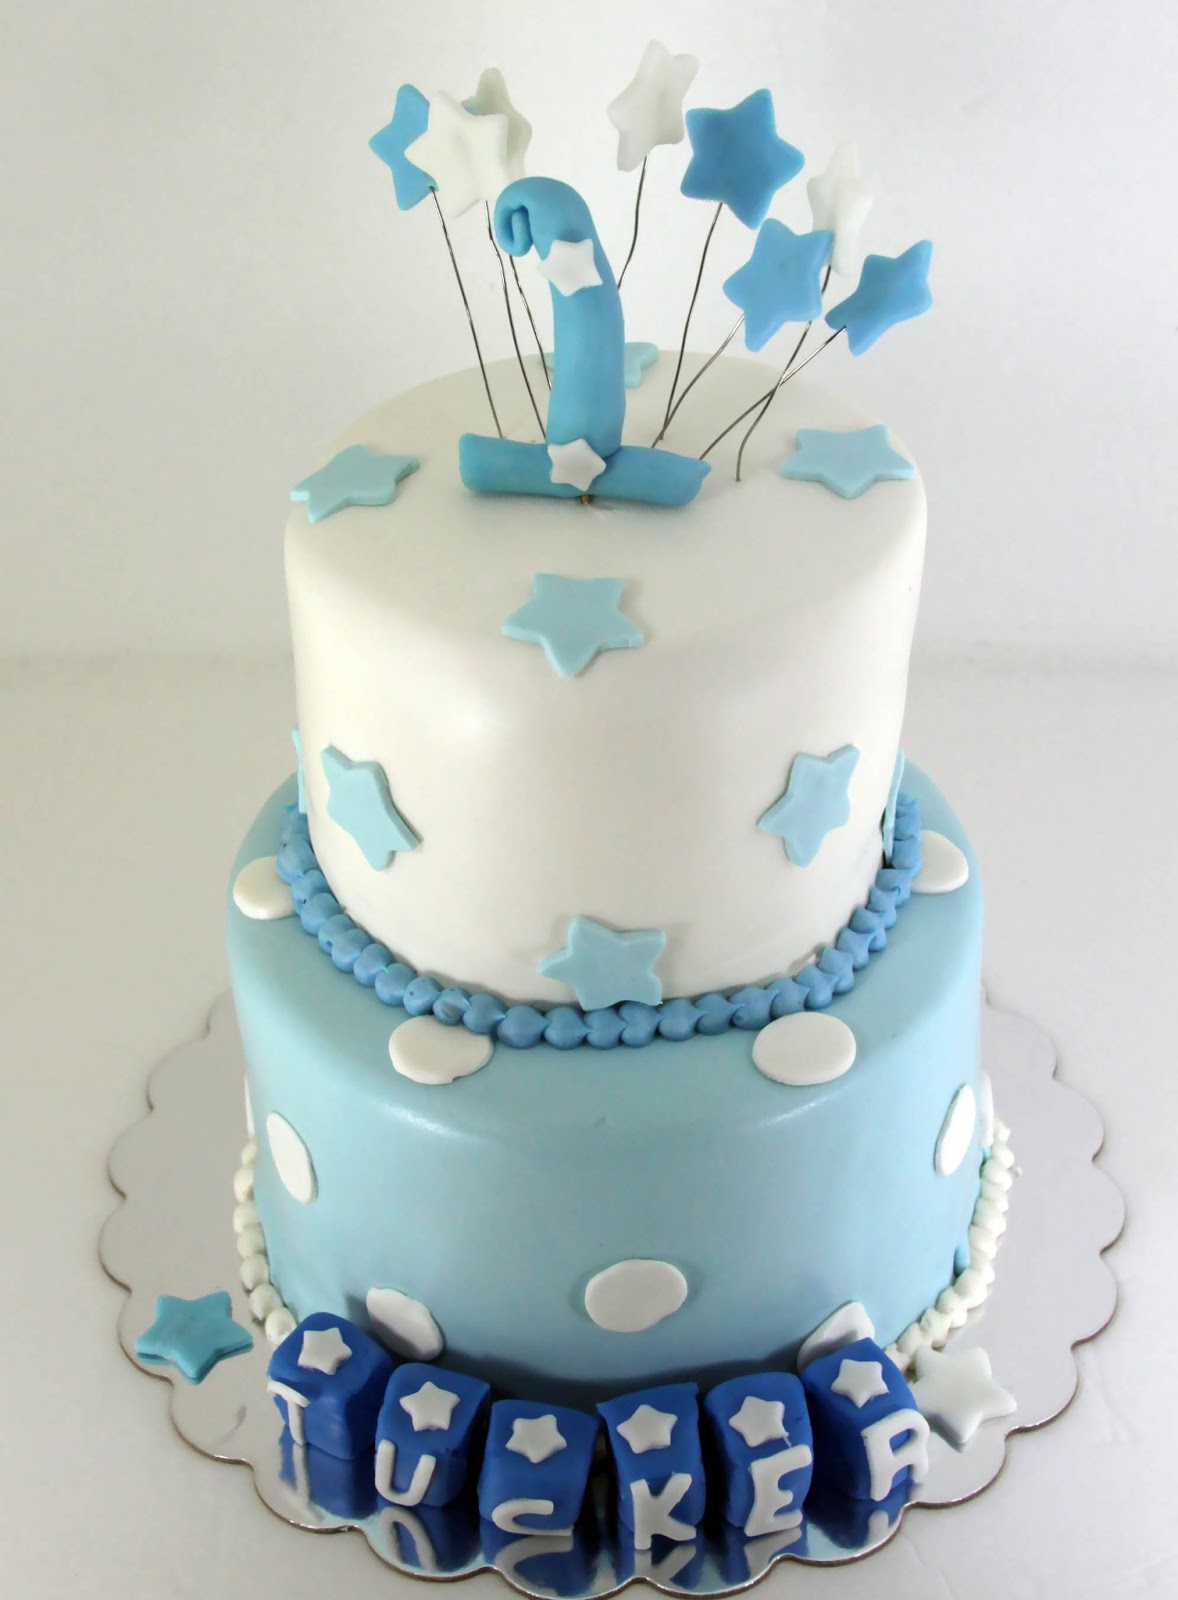 Cake Ideas For Baby Boy 1st Birthday : Tastefully Done: Baby Boy Blue 1st Birthday Cake